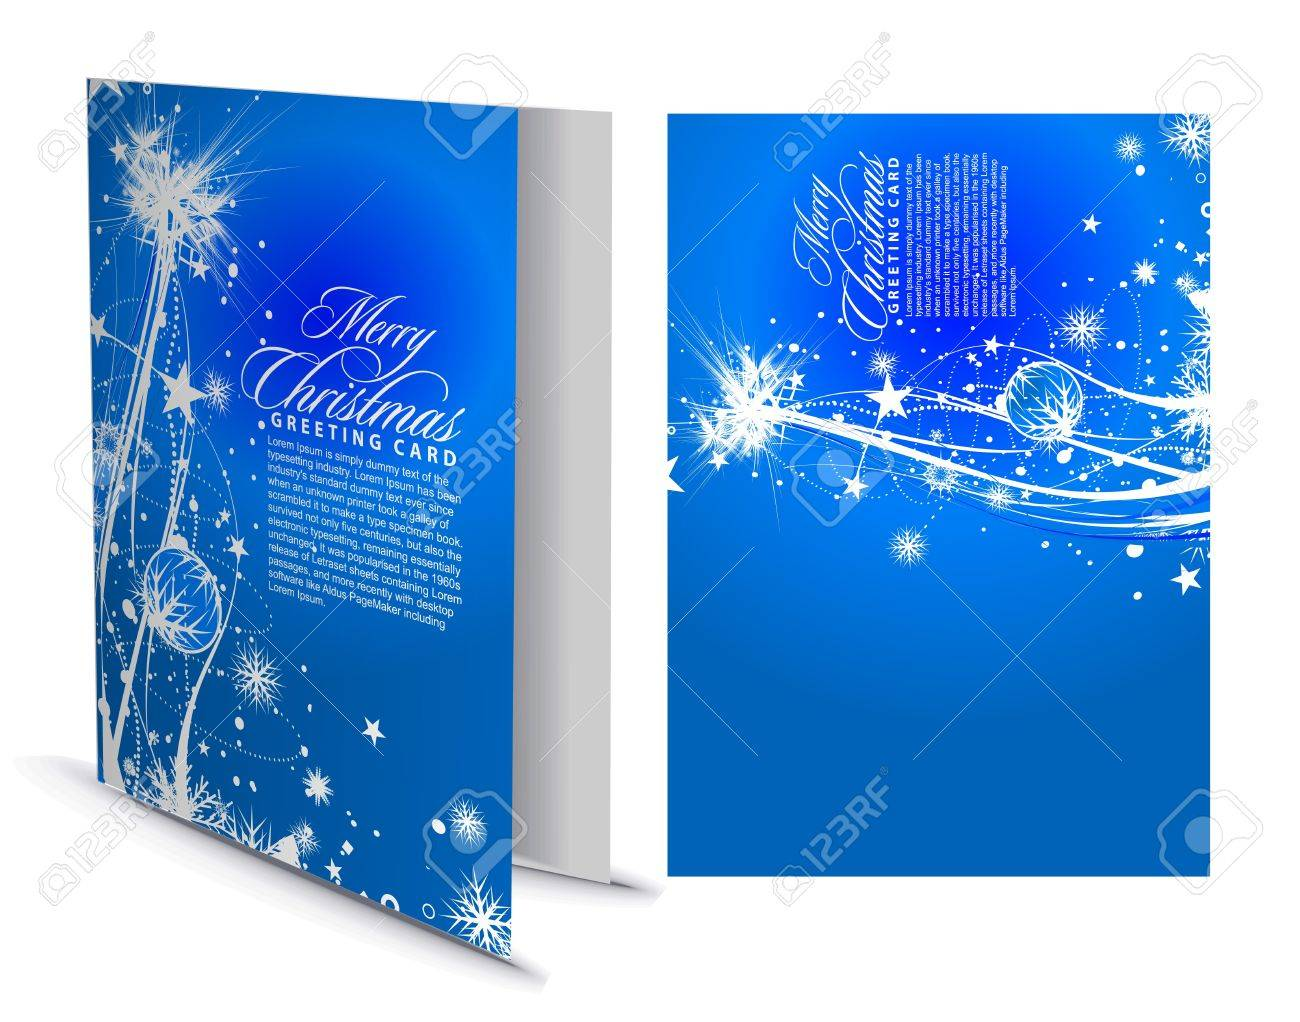 Christmas Greeting Card With Presentation Design Illustration Royalty Free Cliparts Vectors And Stock Illustration Image 8371696